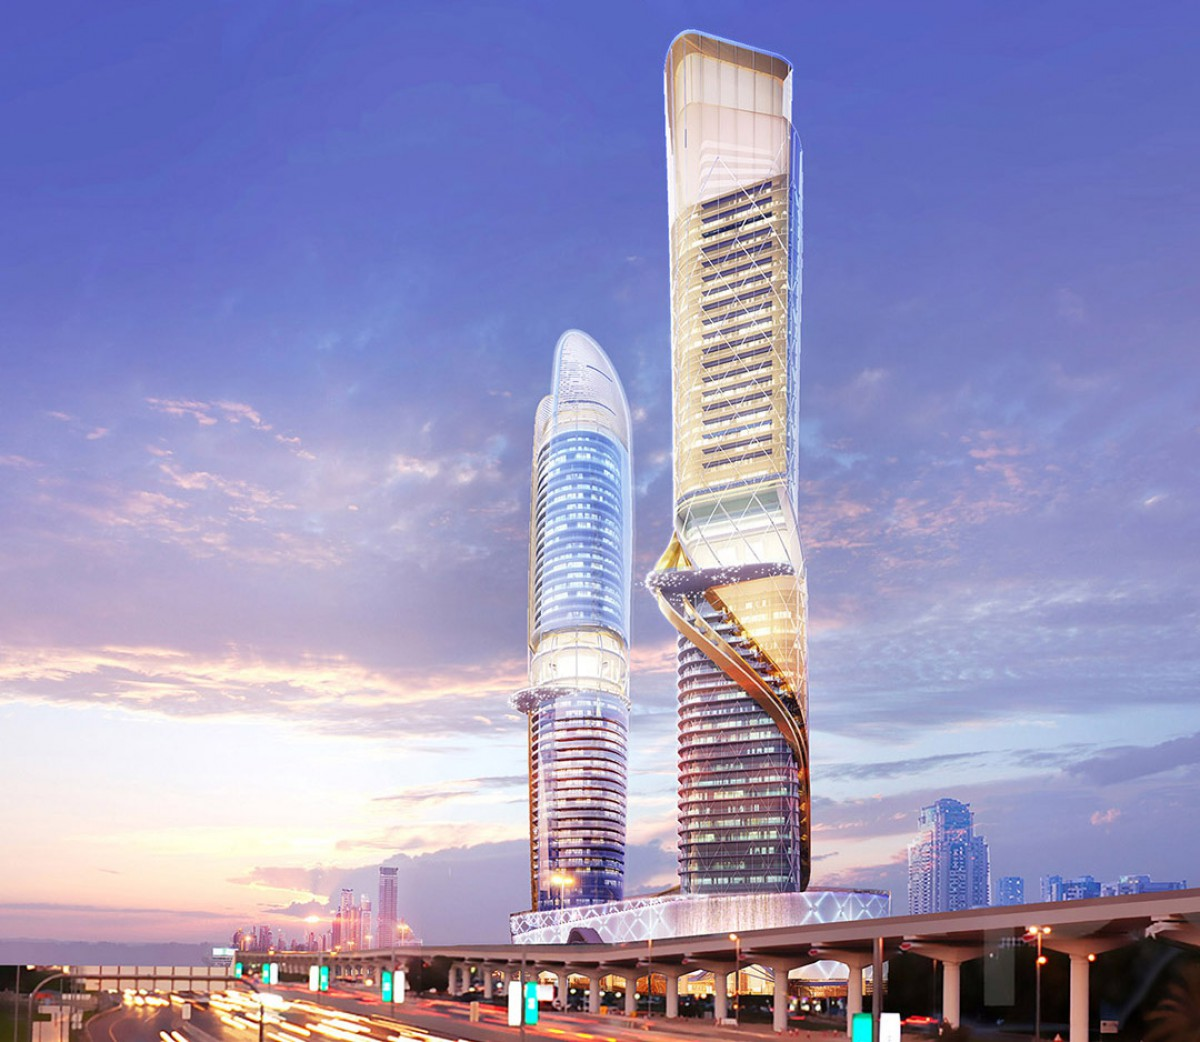 Forum on this topic: New Dubai Towers Will Have Indoor Rainforest , new-dubai-towers-will-have-indoor-rainforest/